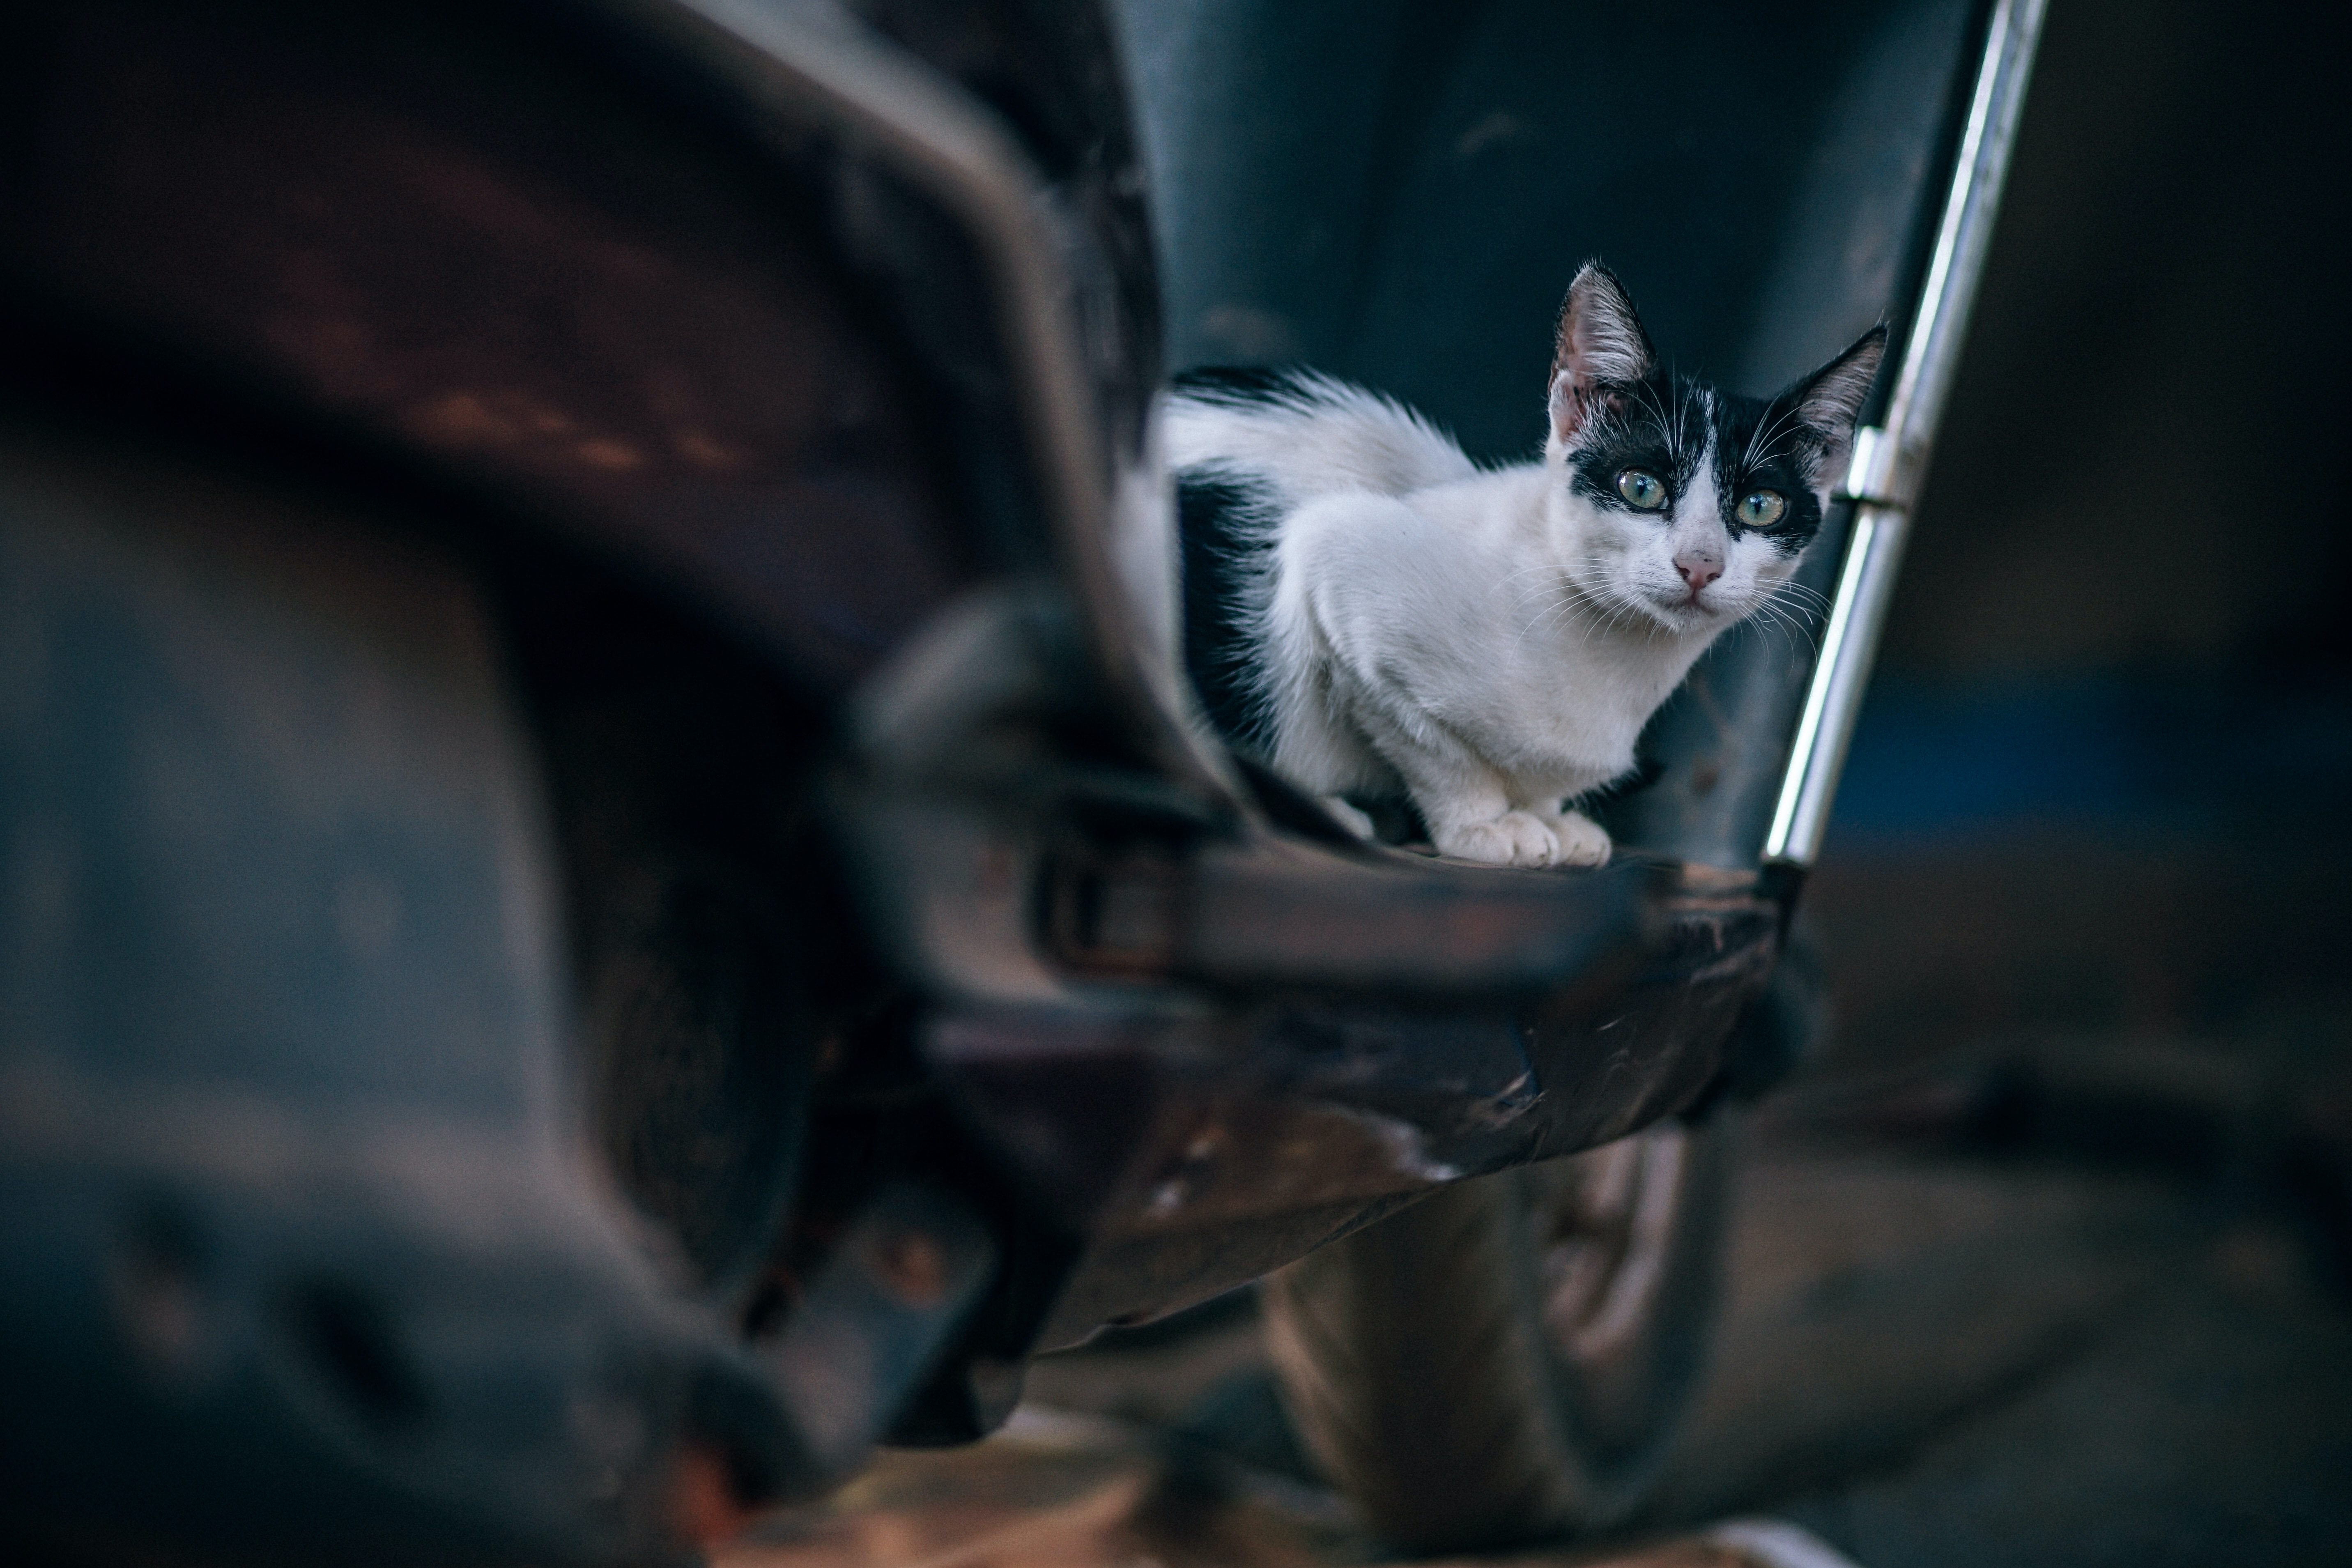 selective focus photography of black and white cat sitting on motor scooter